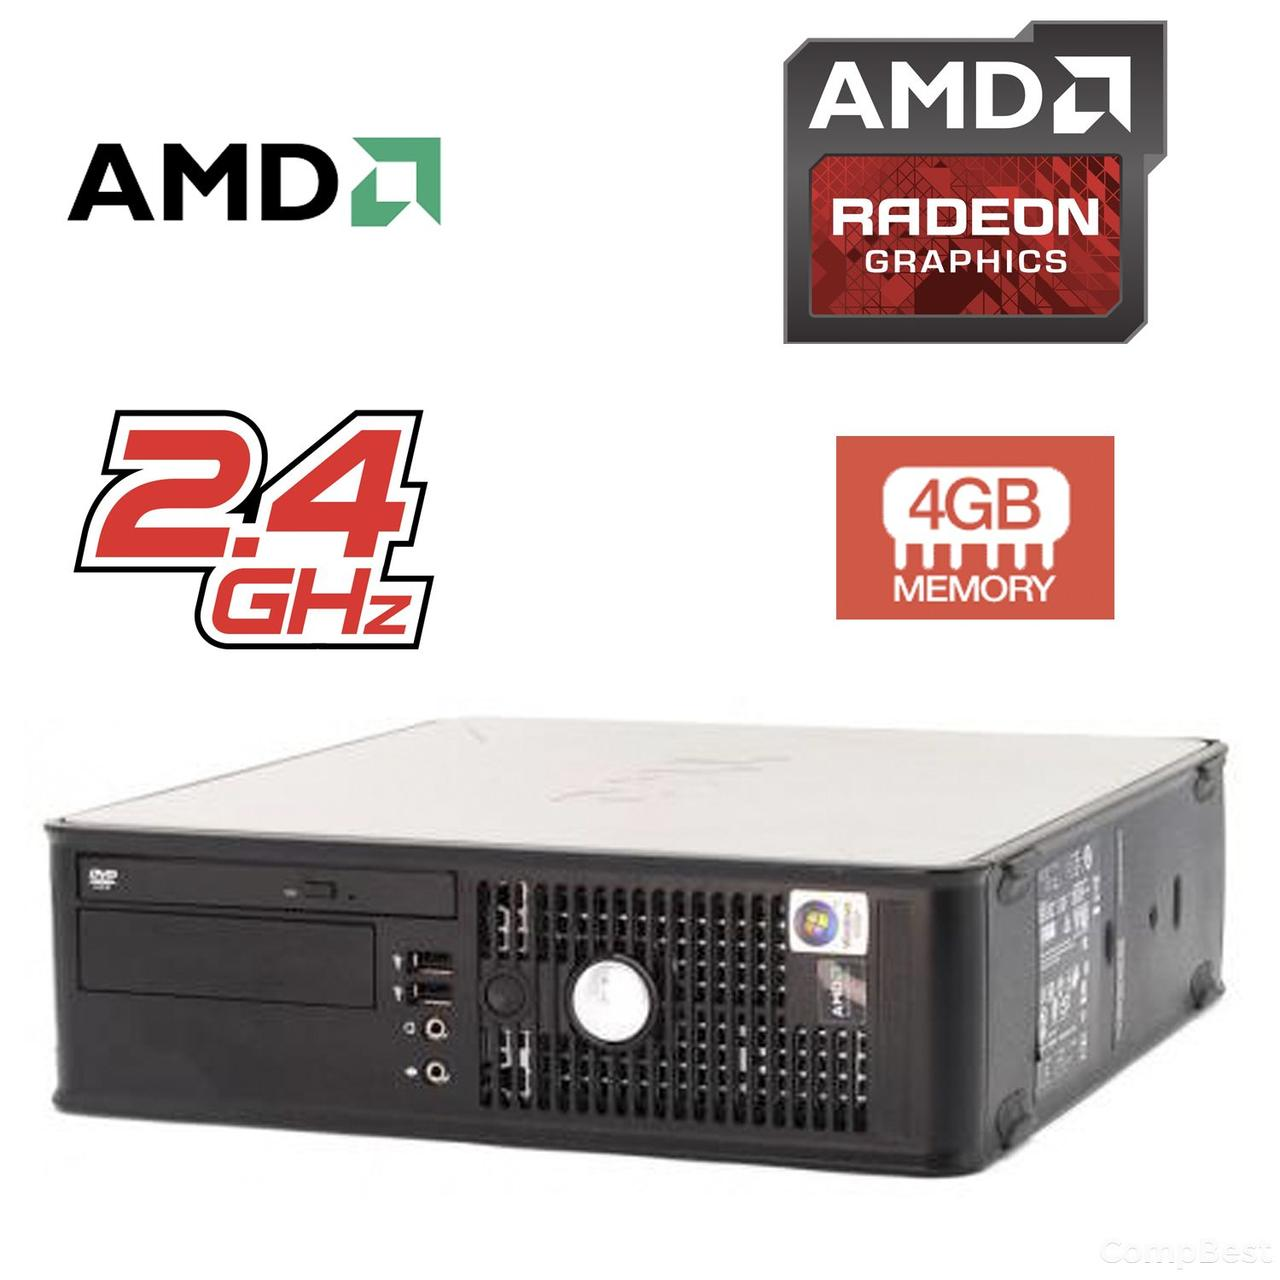 Dell Optiplex 740 SFF / AMD Athlon 64 X2 4600+ (2 ядра по 2.40 GHz) / 4 GB DDR2 / 160 GB HDD / AMD HD 8570 (1Gb 128-bit GDDR3)